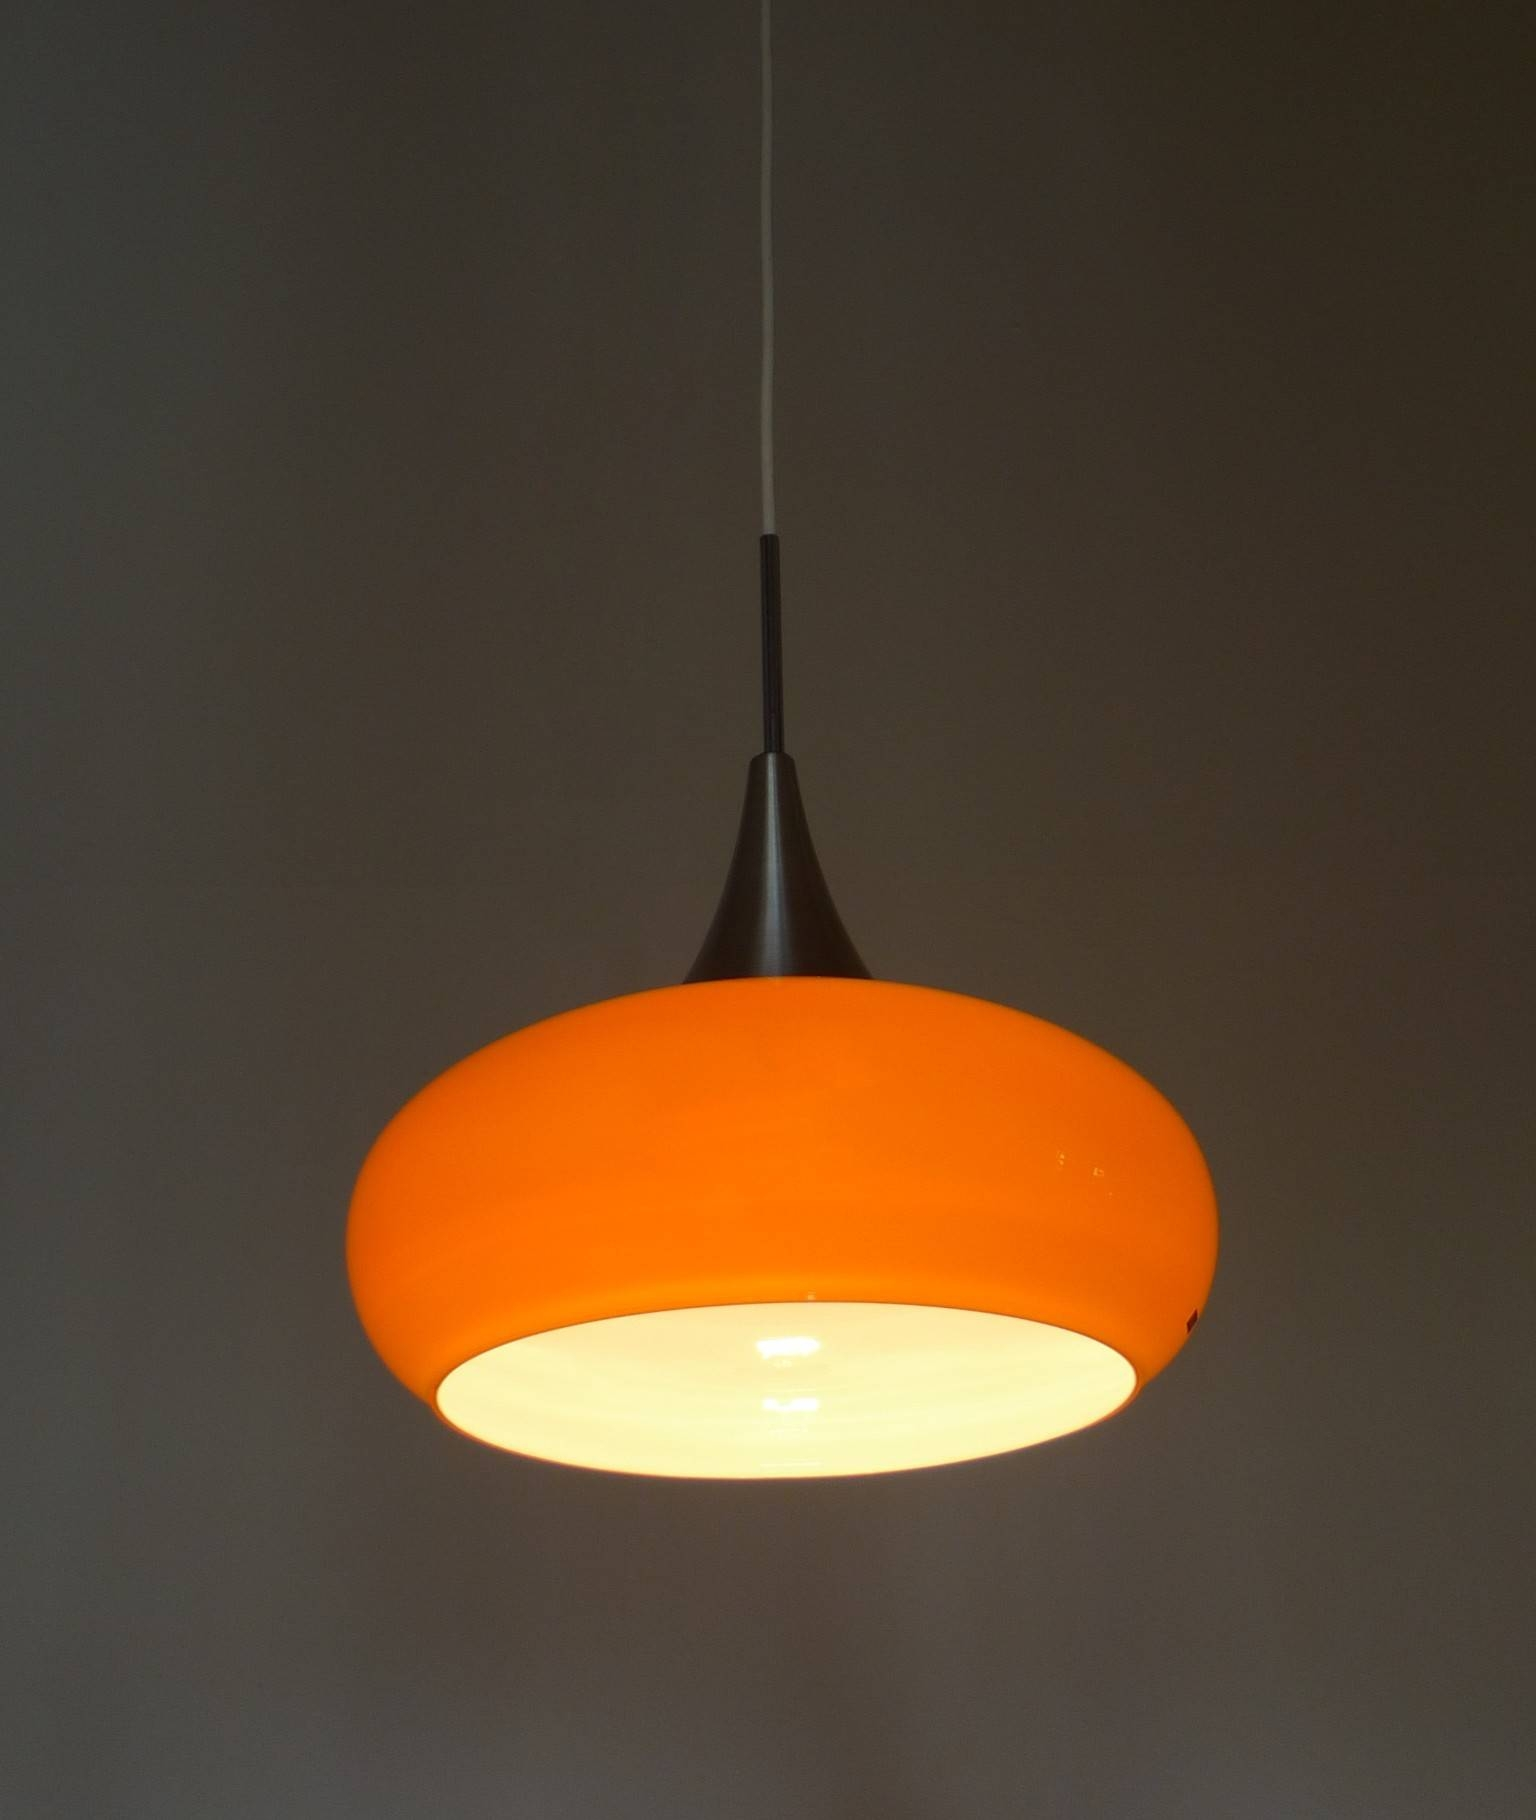 Orange Glass Pendant Light From Doria, Germany - 1960S - Design Market throughout 1960S Pendant Lights (Image 11 of 15)